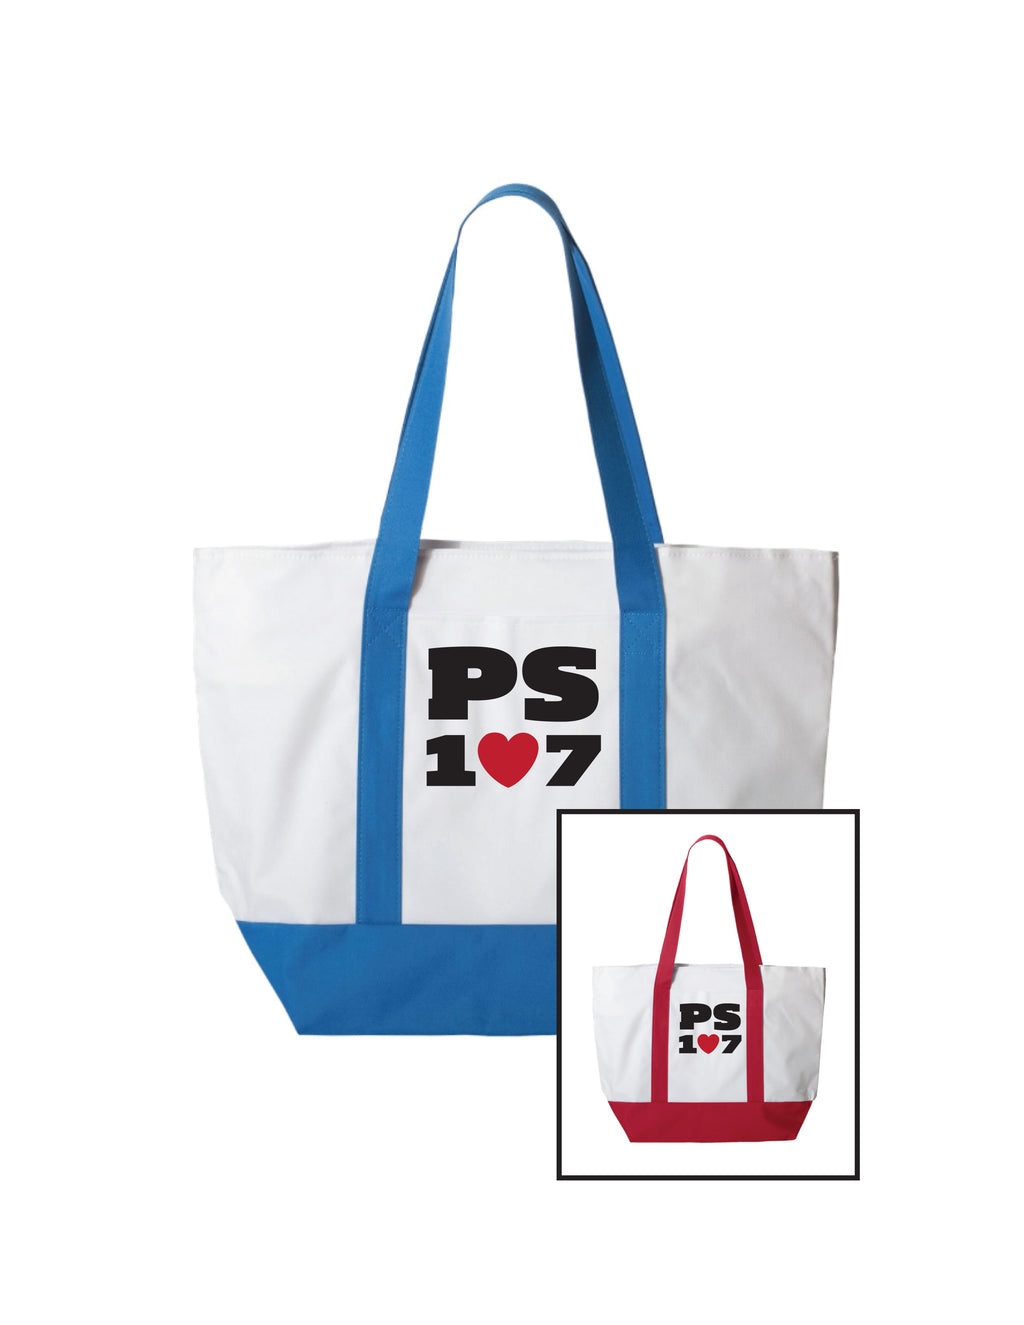 PS107 Large Beach Tote